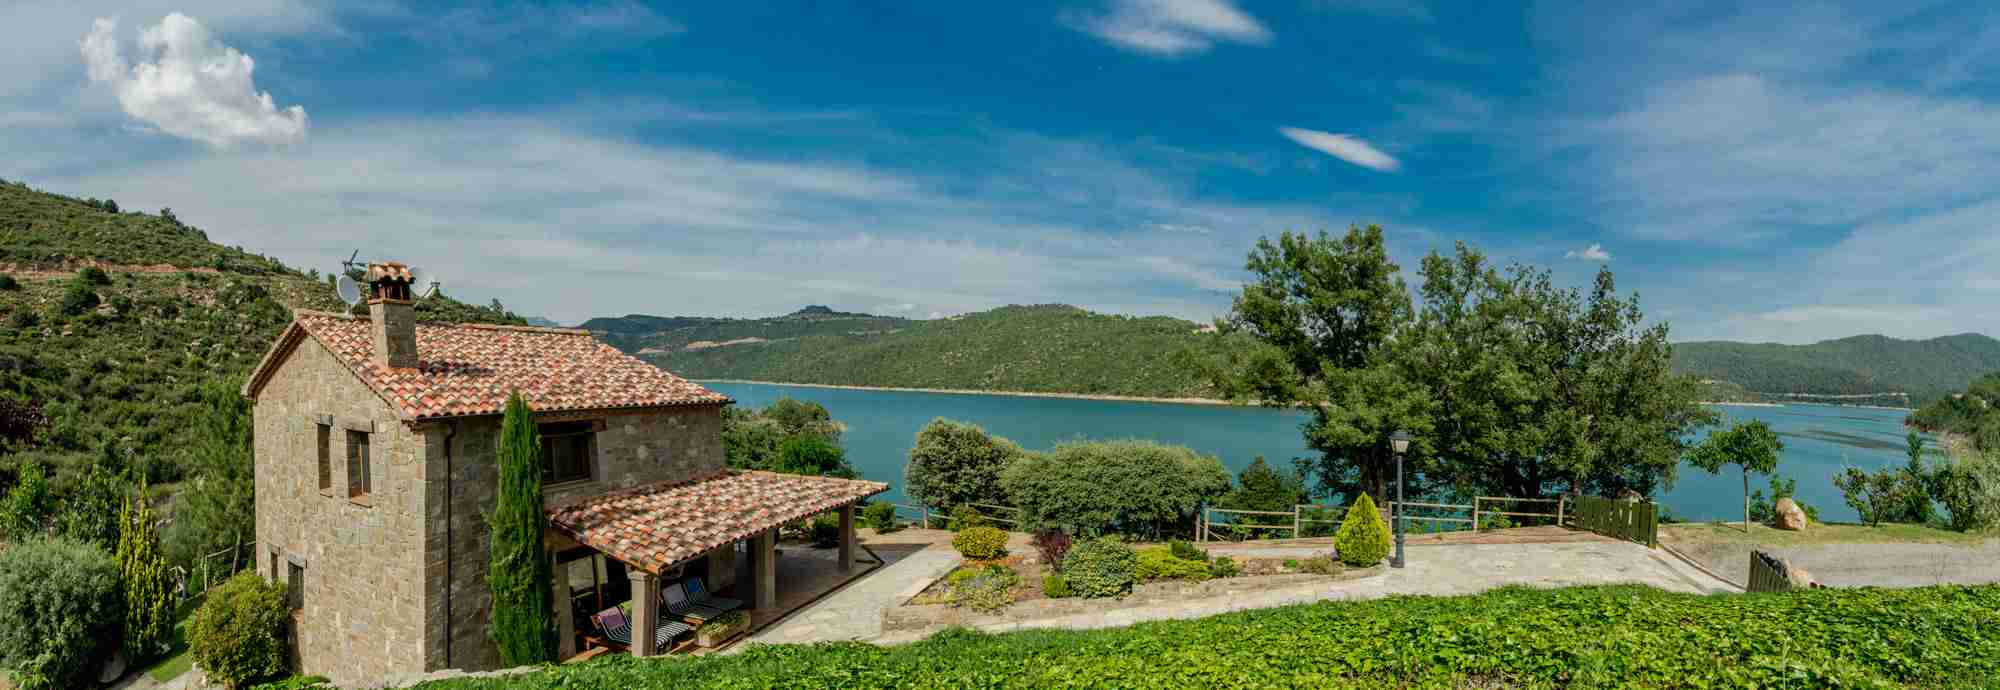 Fabulous 3 bed lakeside finca for swimming and walking in Catalonia